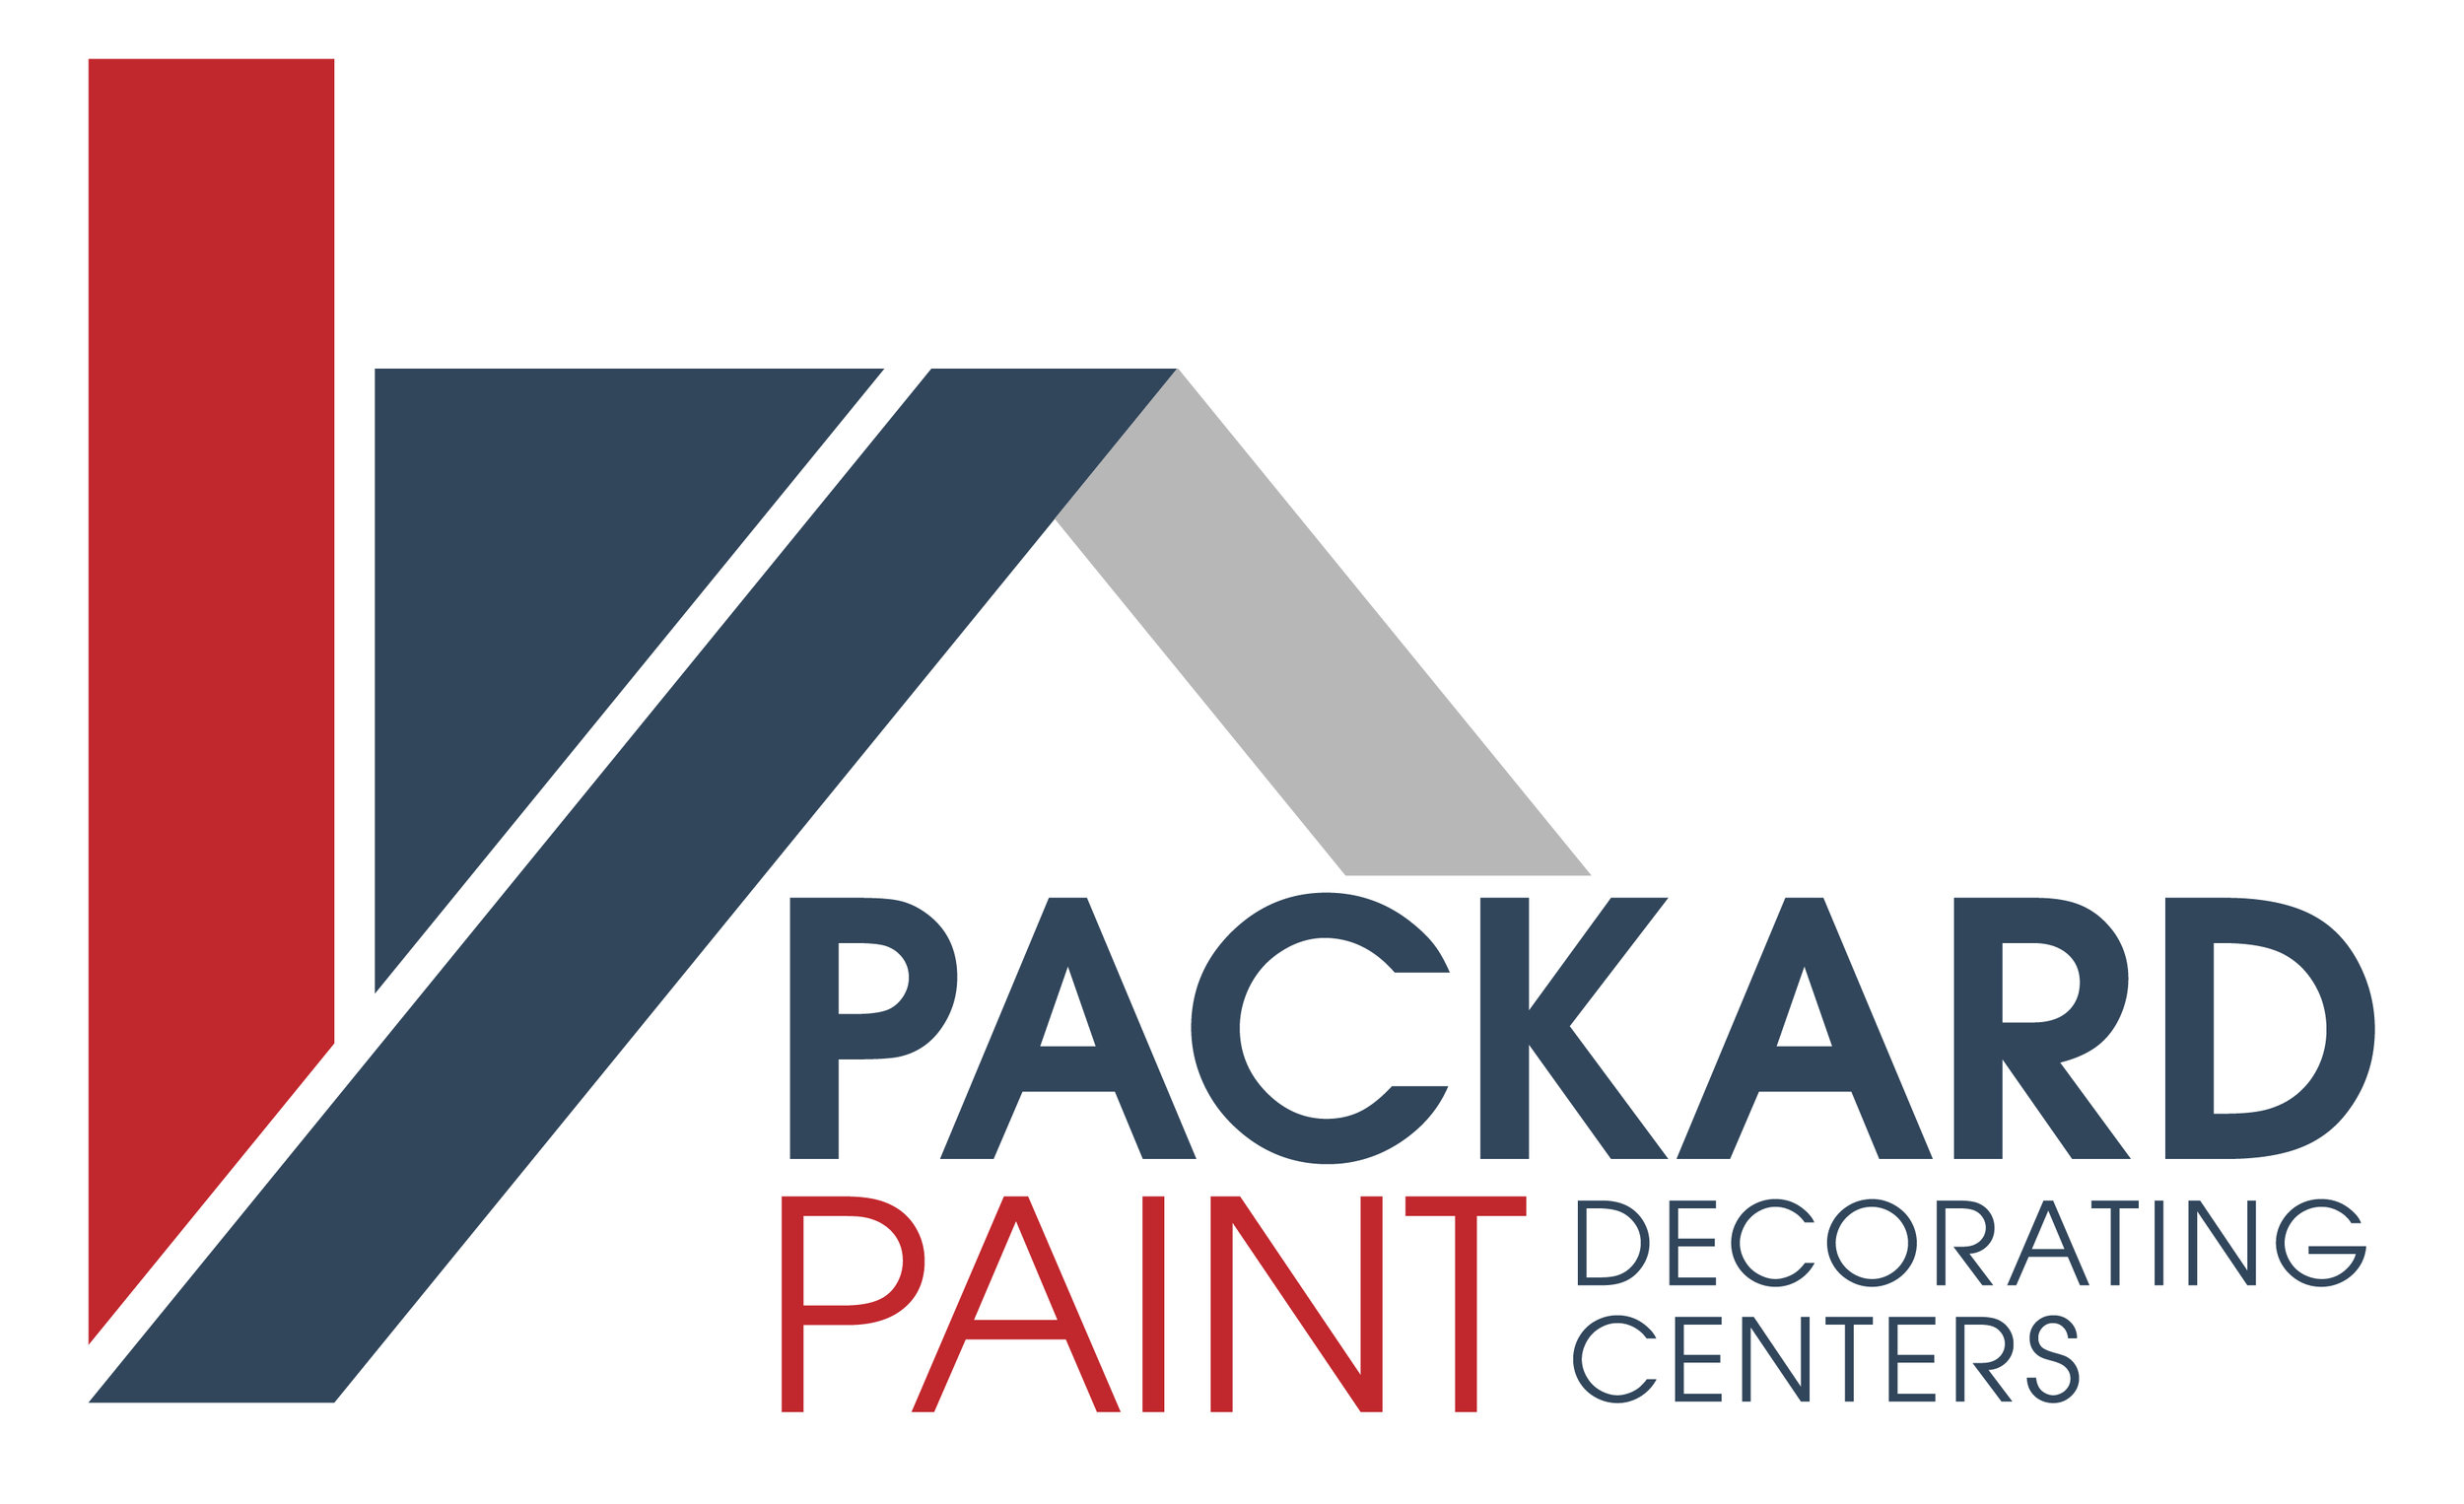 2018 Packard Paint logo.jpg